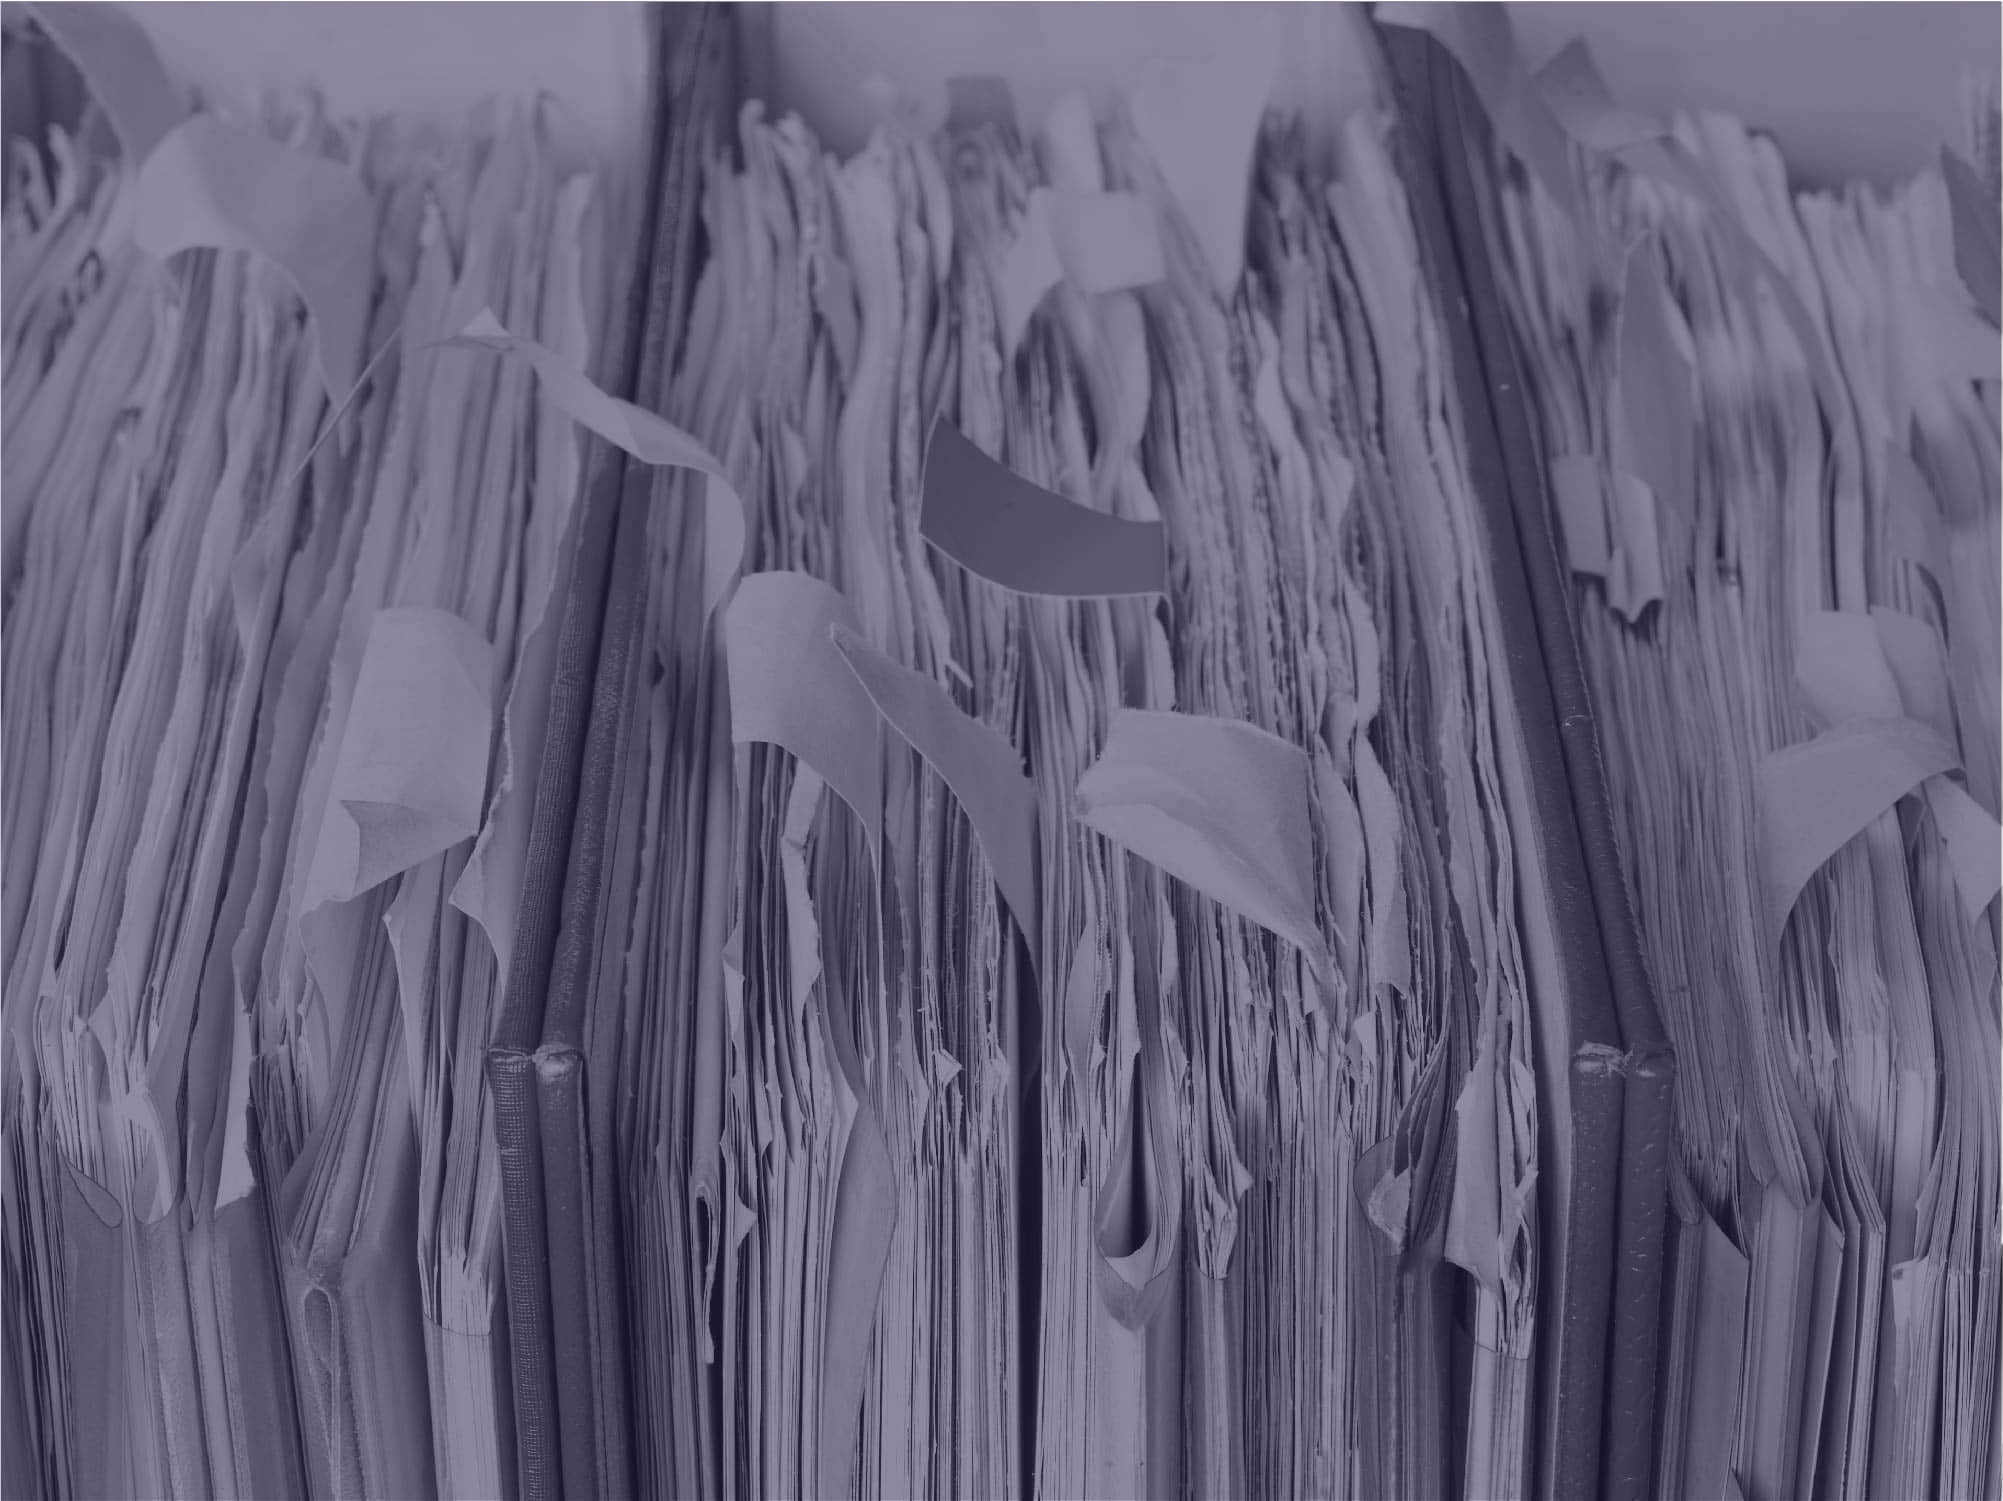 Messy paper files image